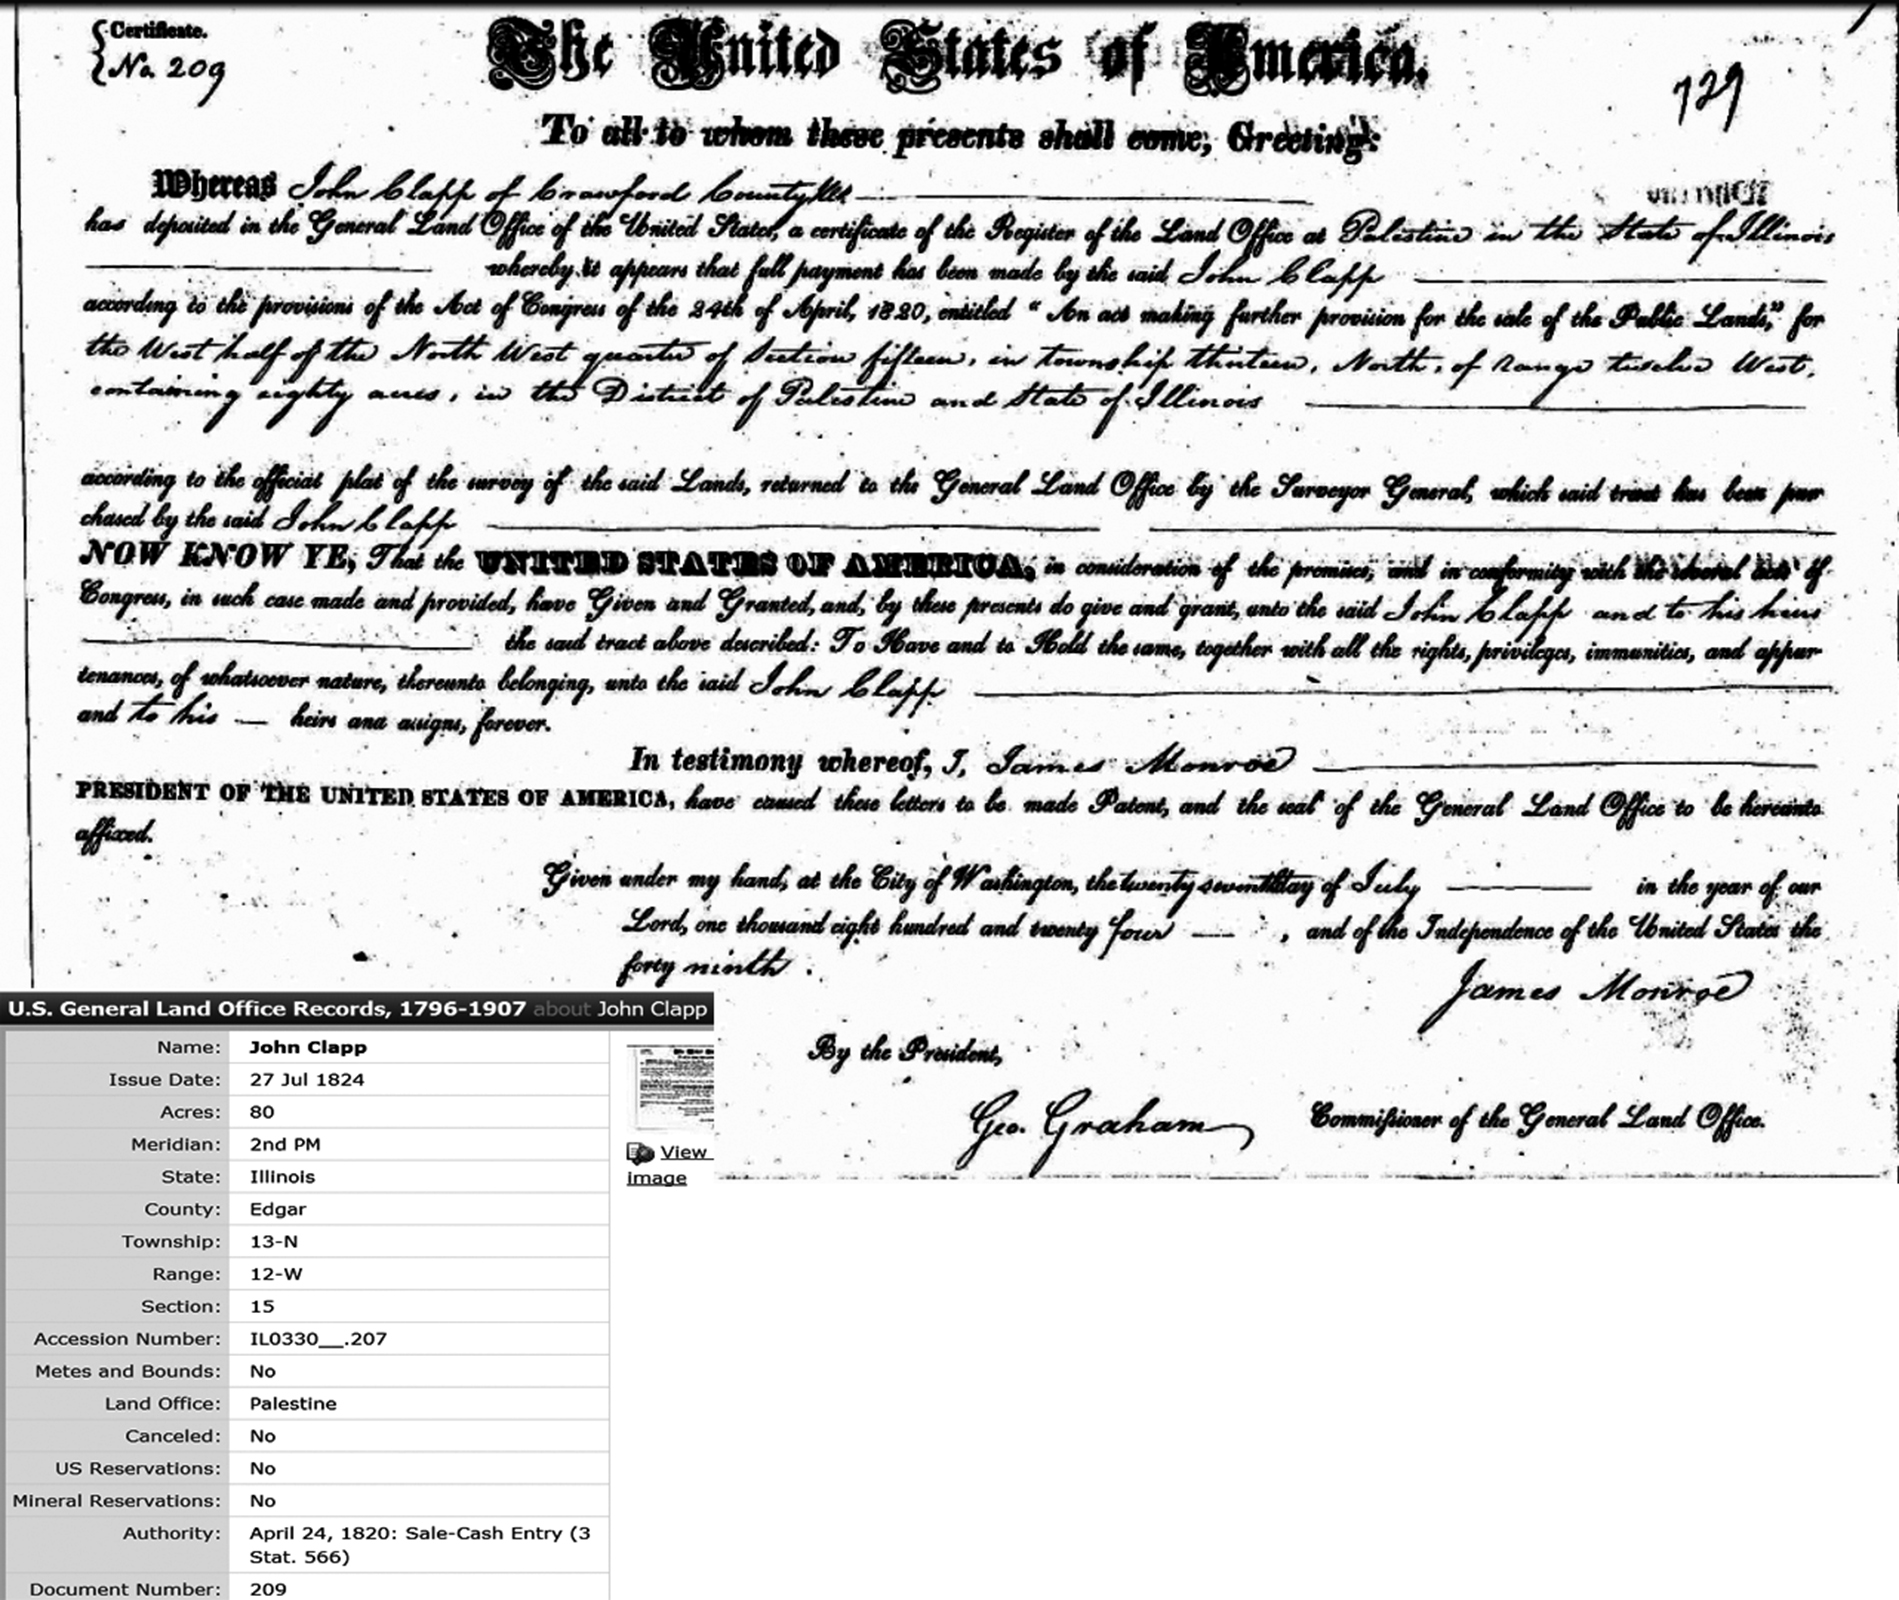 Illinois edgar county kansas - 1823 John Clapp A Resident Of Crawford County Illinois Was Granted A Homestead Deed On 80 Acres In The Palestine District Crawford County Illinois